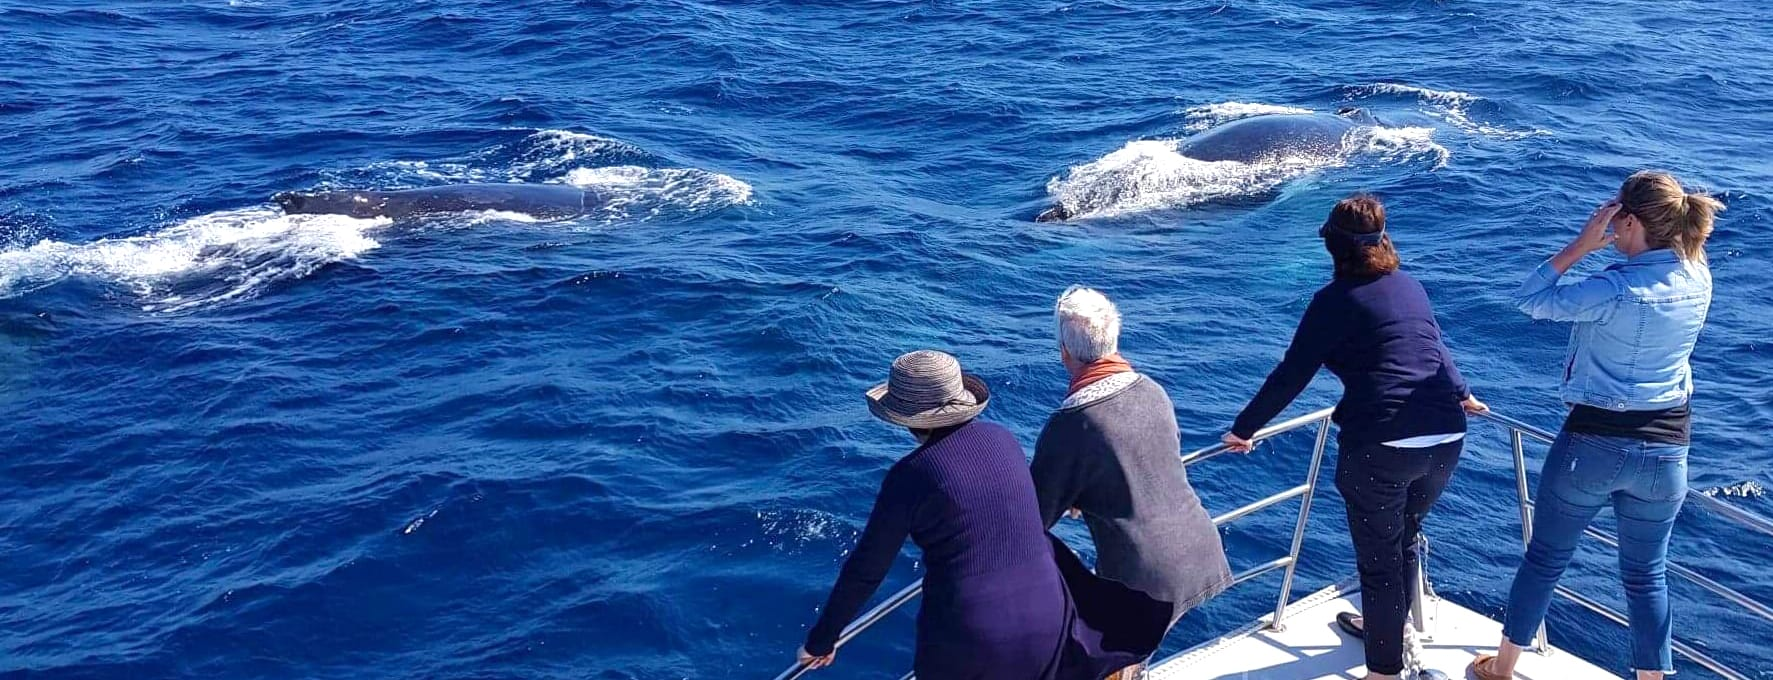 "Whale Watching ""without the crowds"" on the Sunshine Coast"